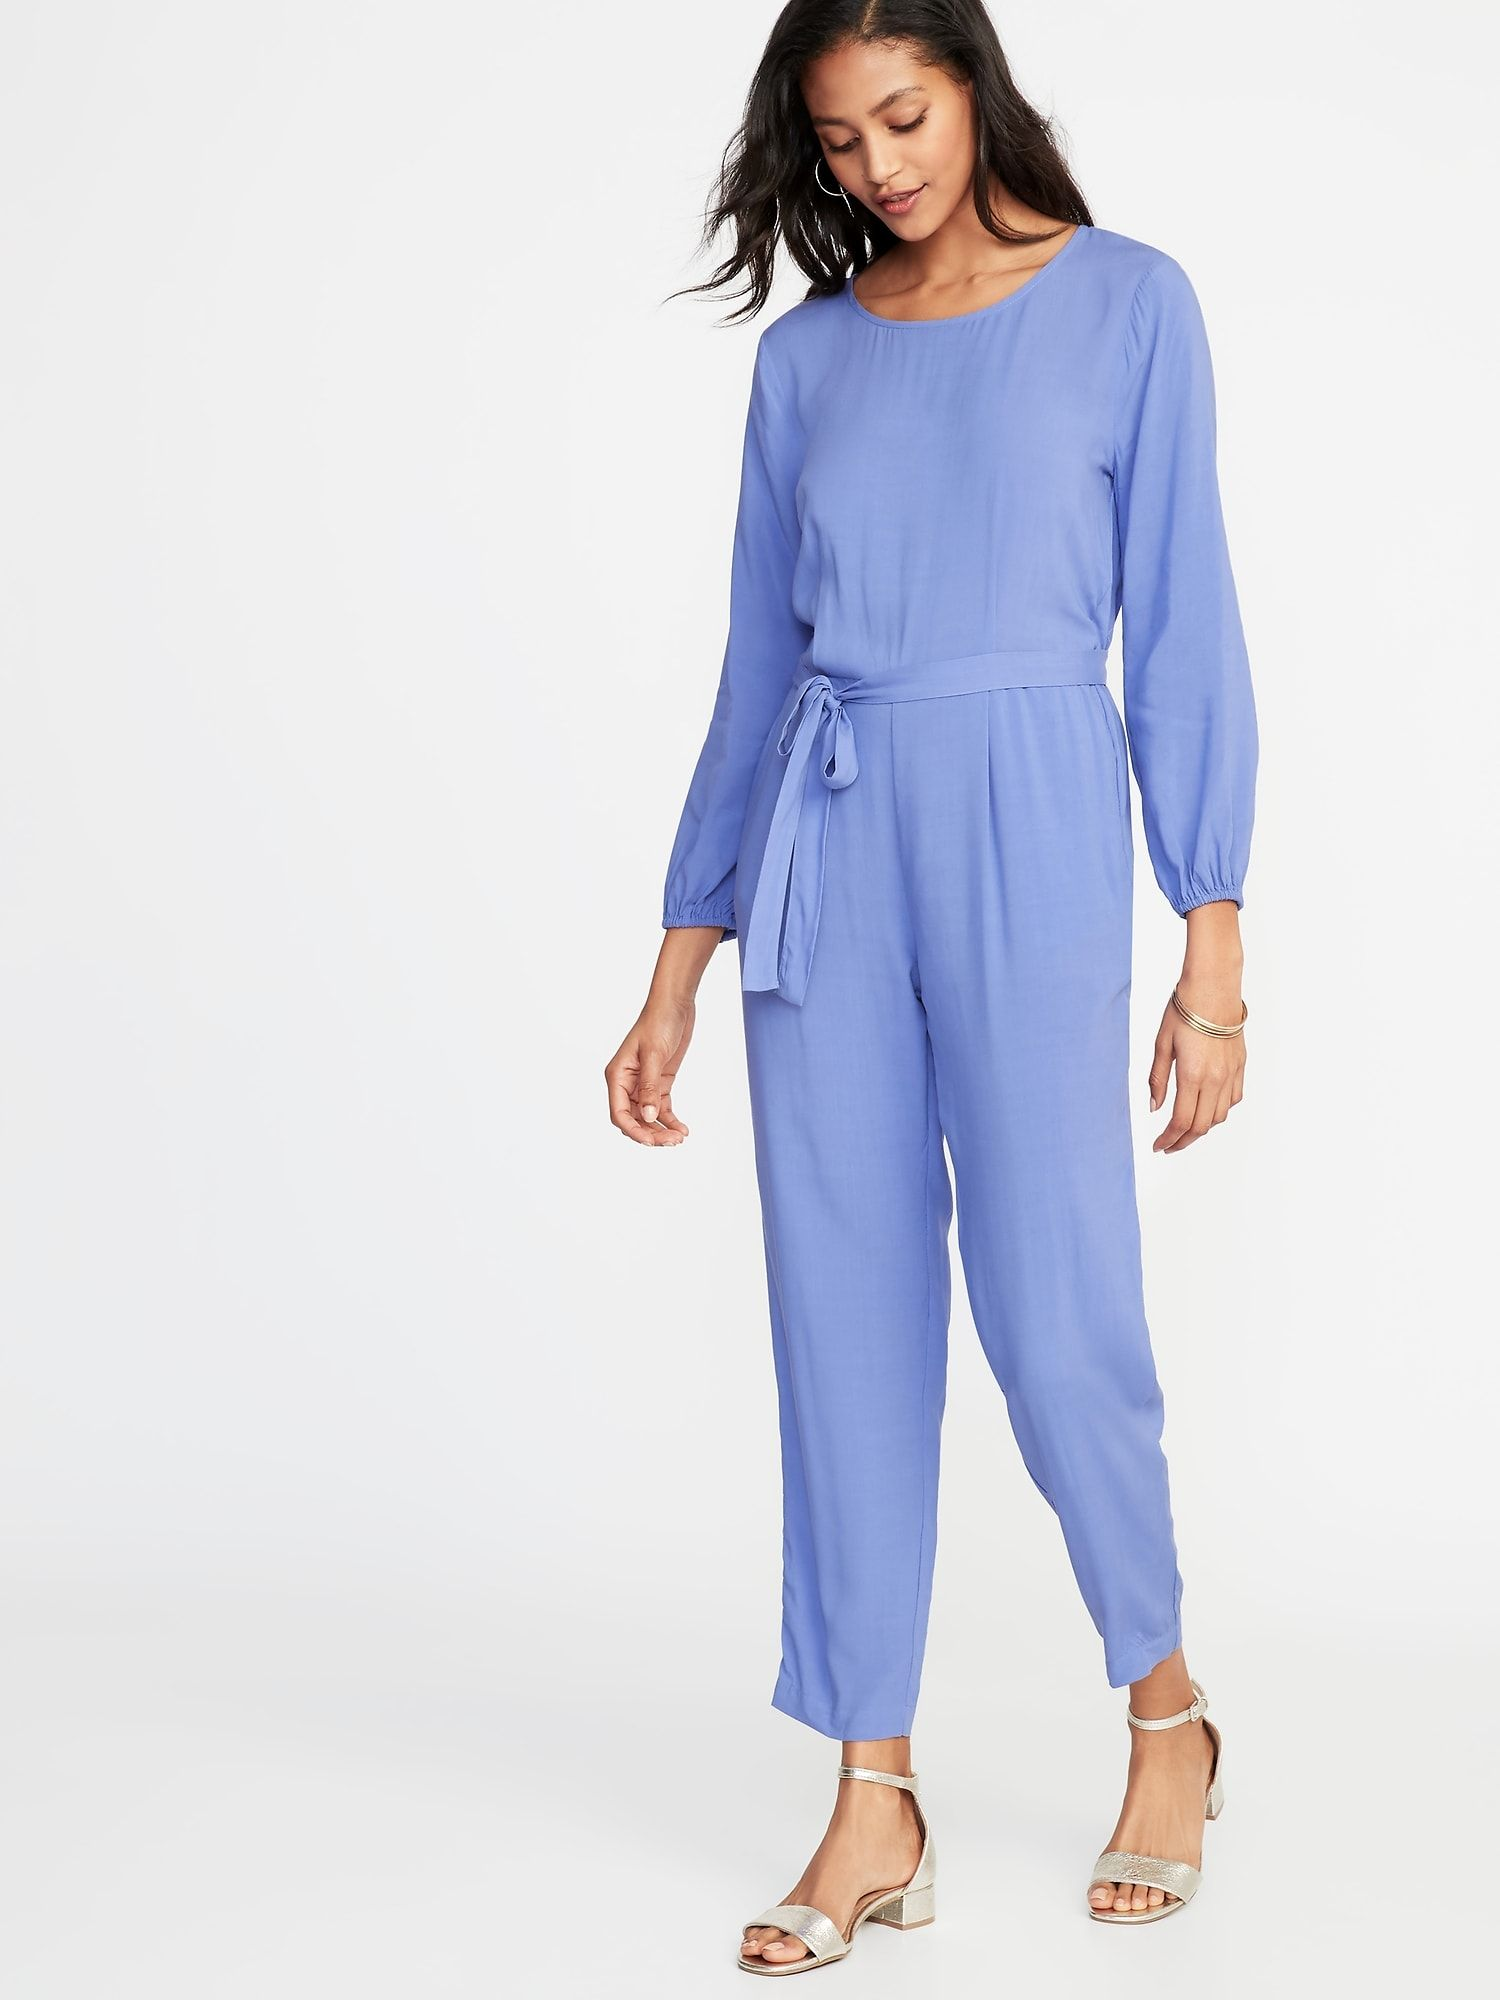 58c950eb265 Waist-Defined Cross-Back Jumpsuit for Women in 2019